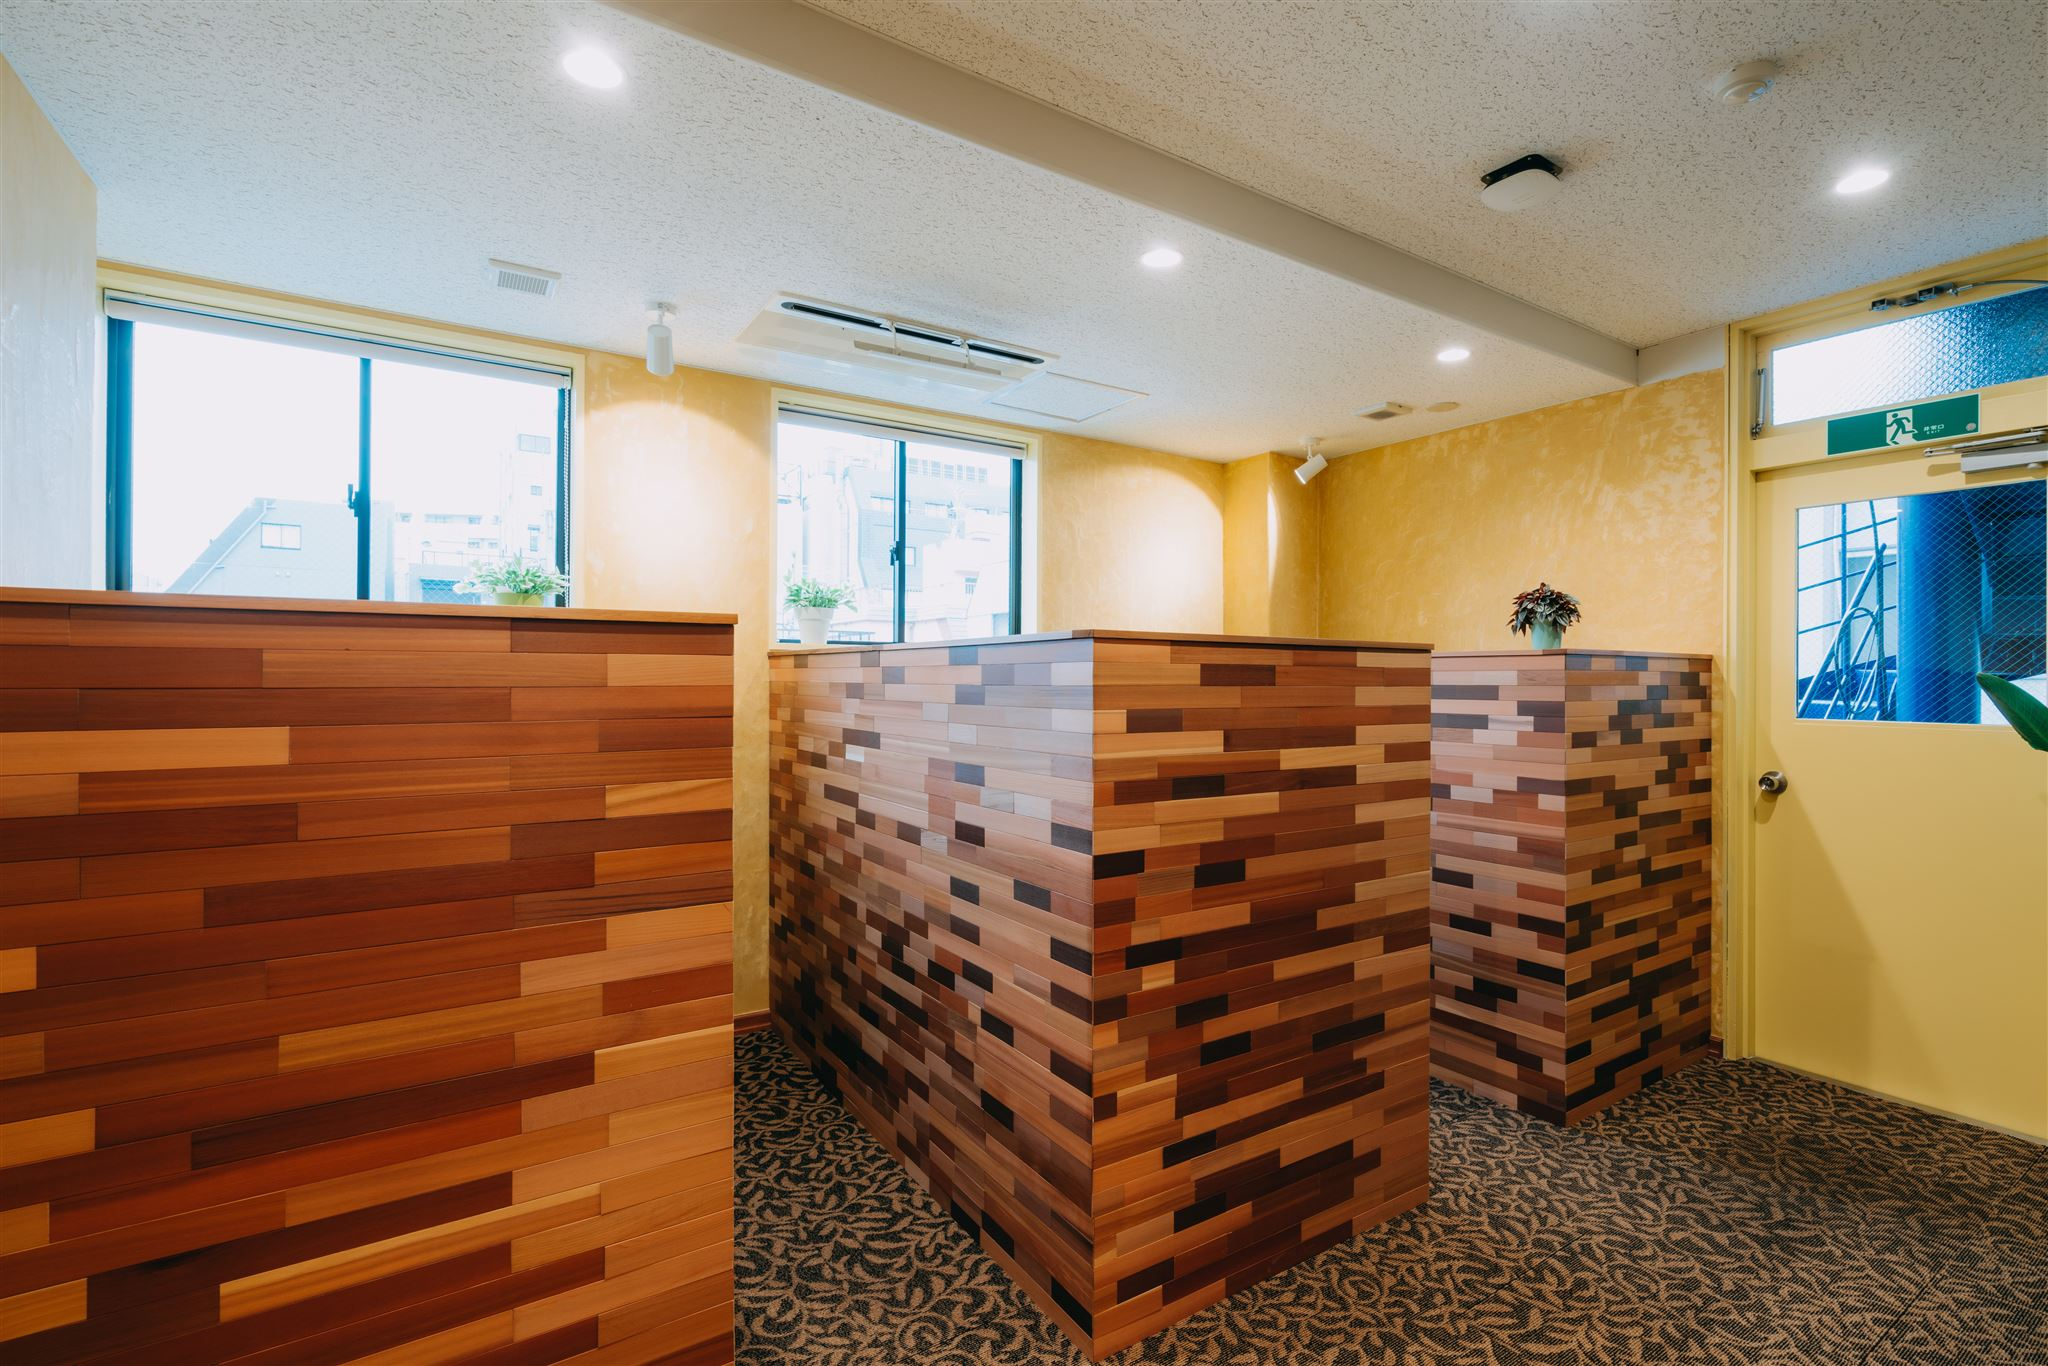 Private Booths at Ryozan Park Grand in Sugamo Tokyo